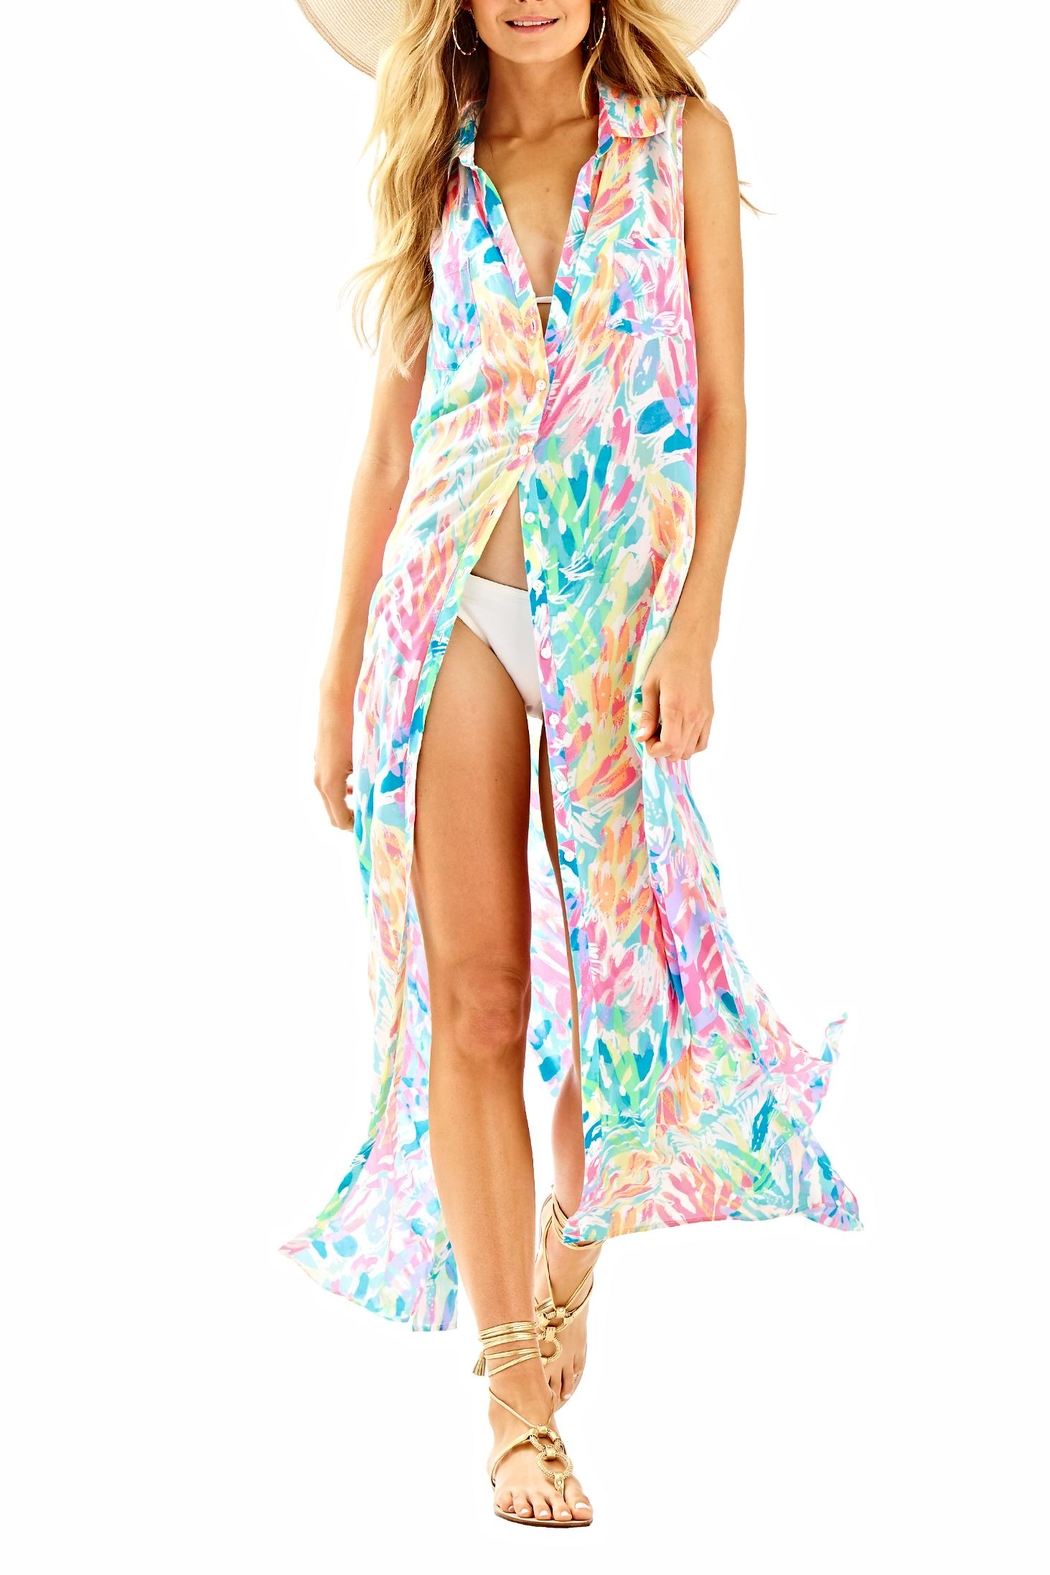 Lilly Pulitzer Ezra Maxi Beach Dress - Front Cropped Image